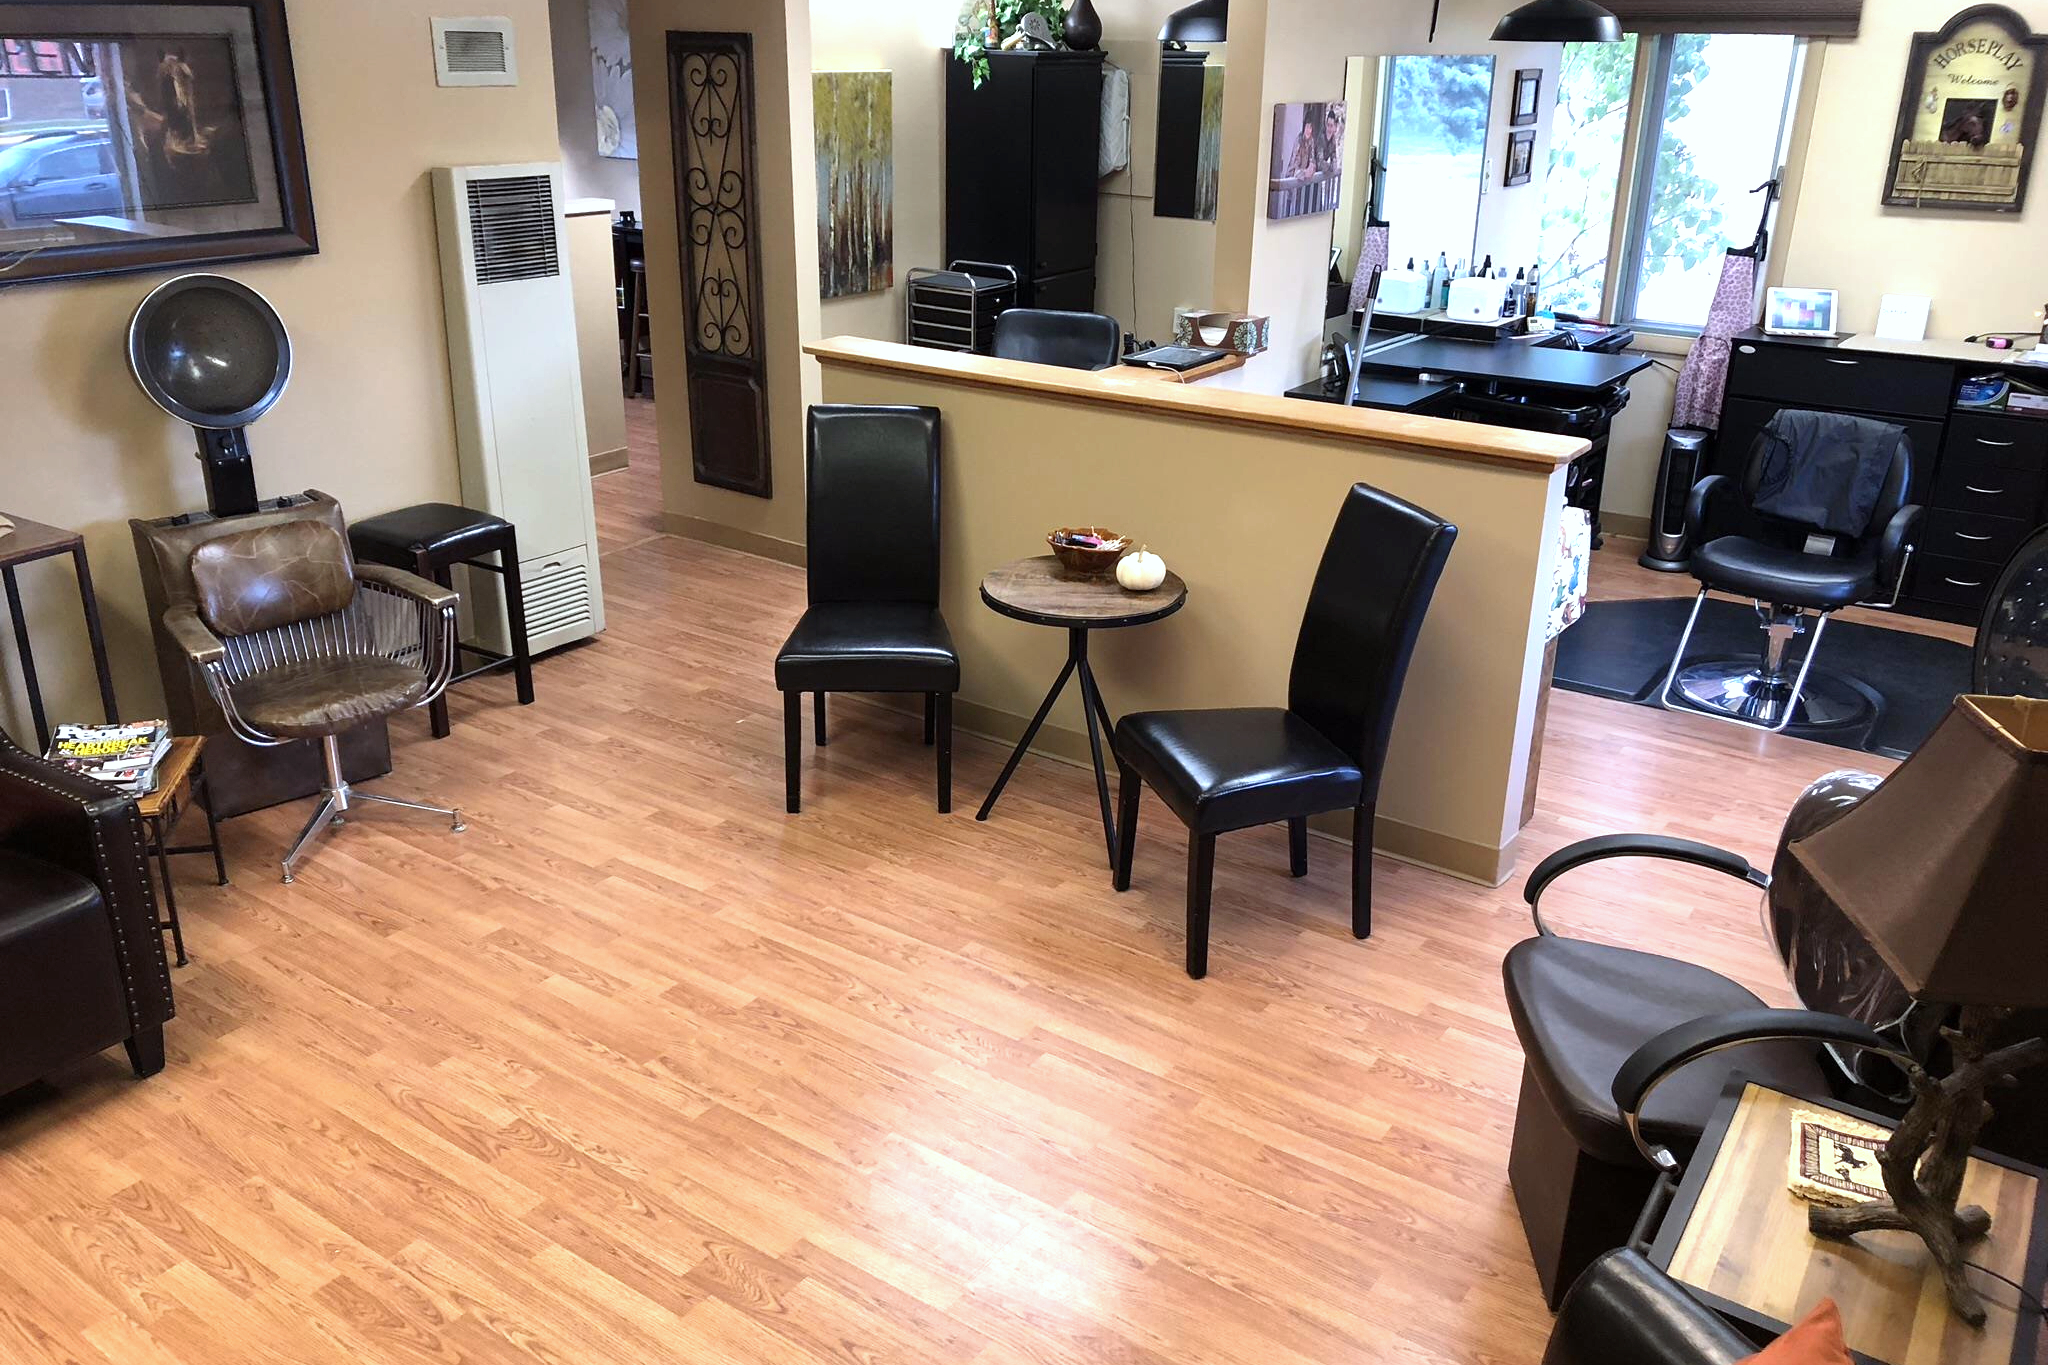 First impressions salon in helena mt vagaro for 1st impressions salon